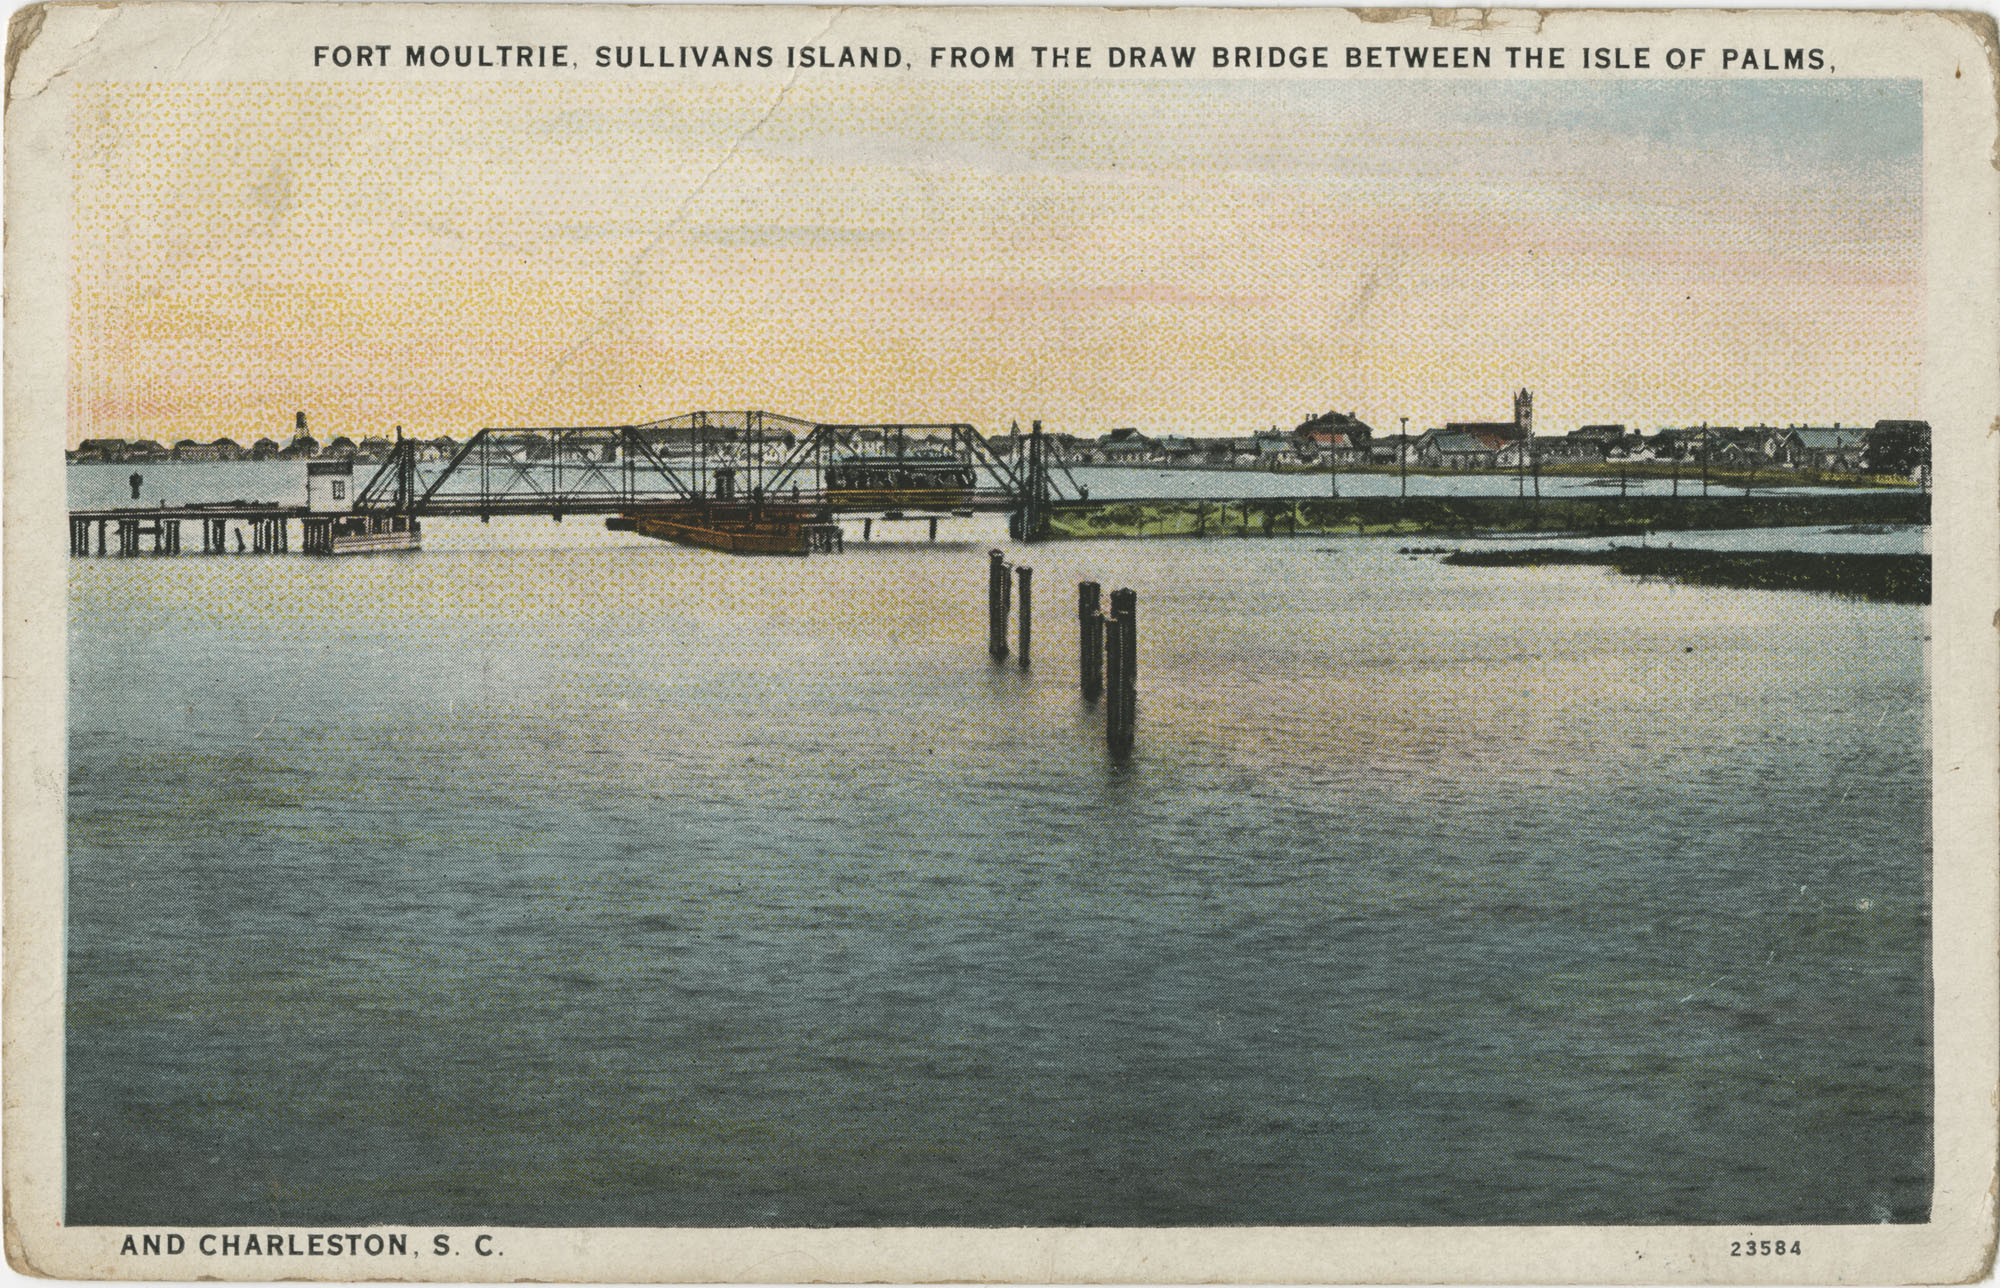 Fort Moultrie, Sullivan's Island, from the Draw Bridge between the Isle of Palms and Charleston, S.C.